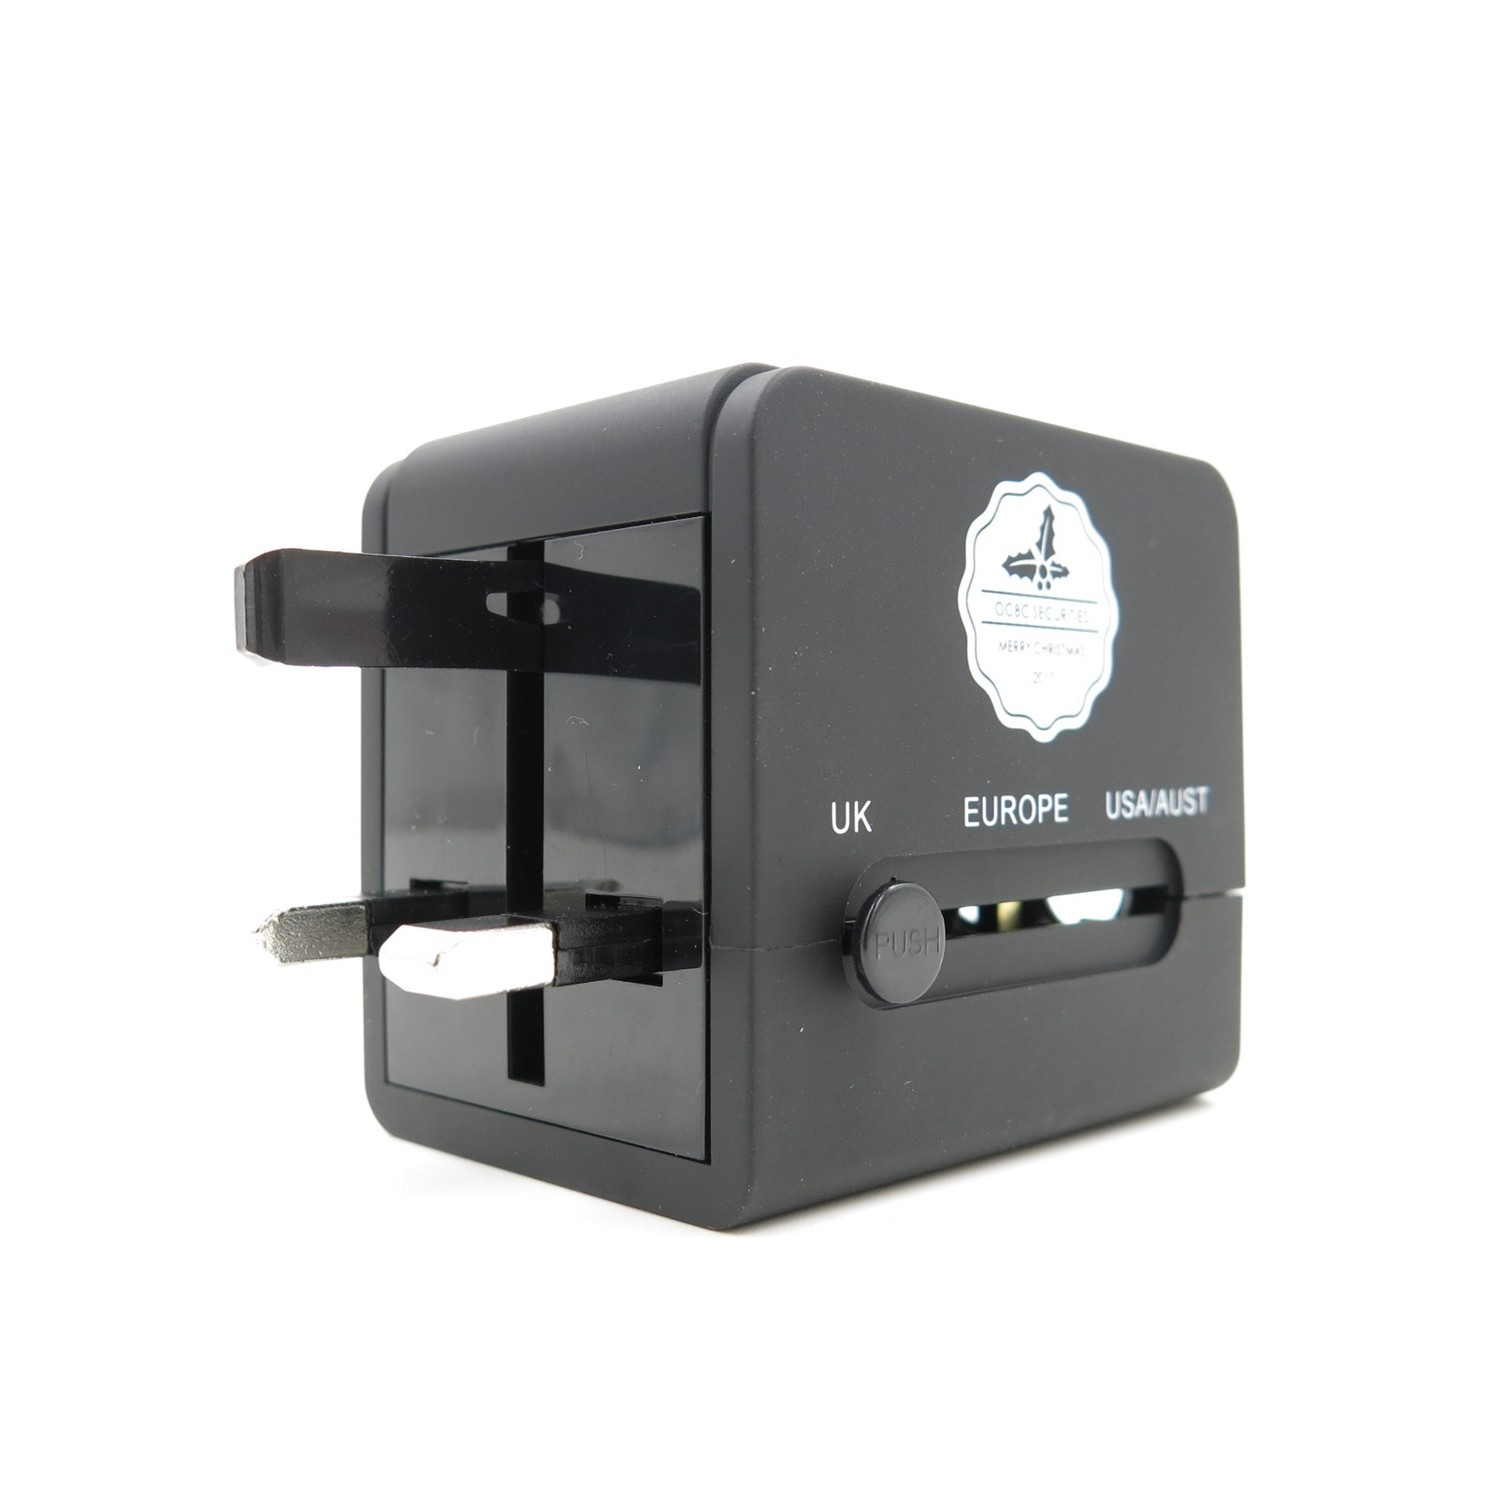 International Travel Adapter Corporate Gifts Singapore